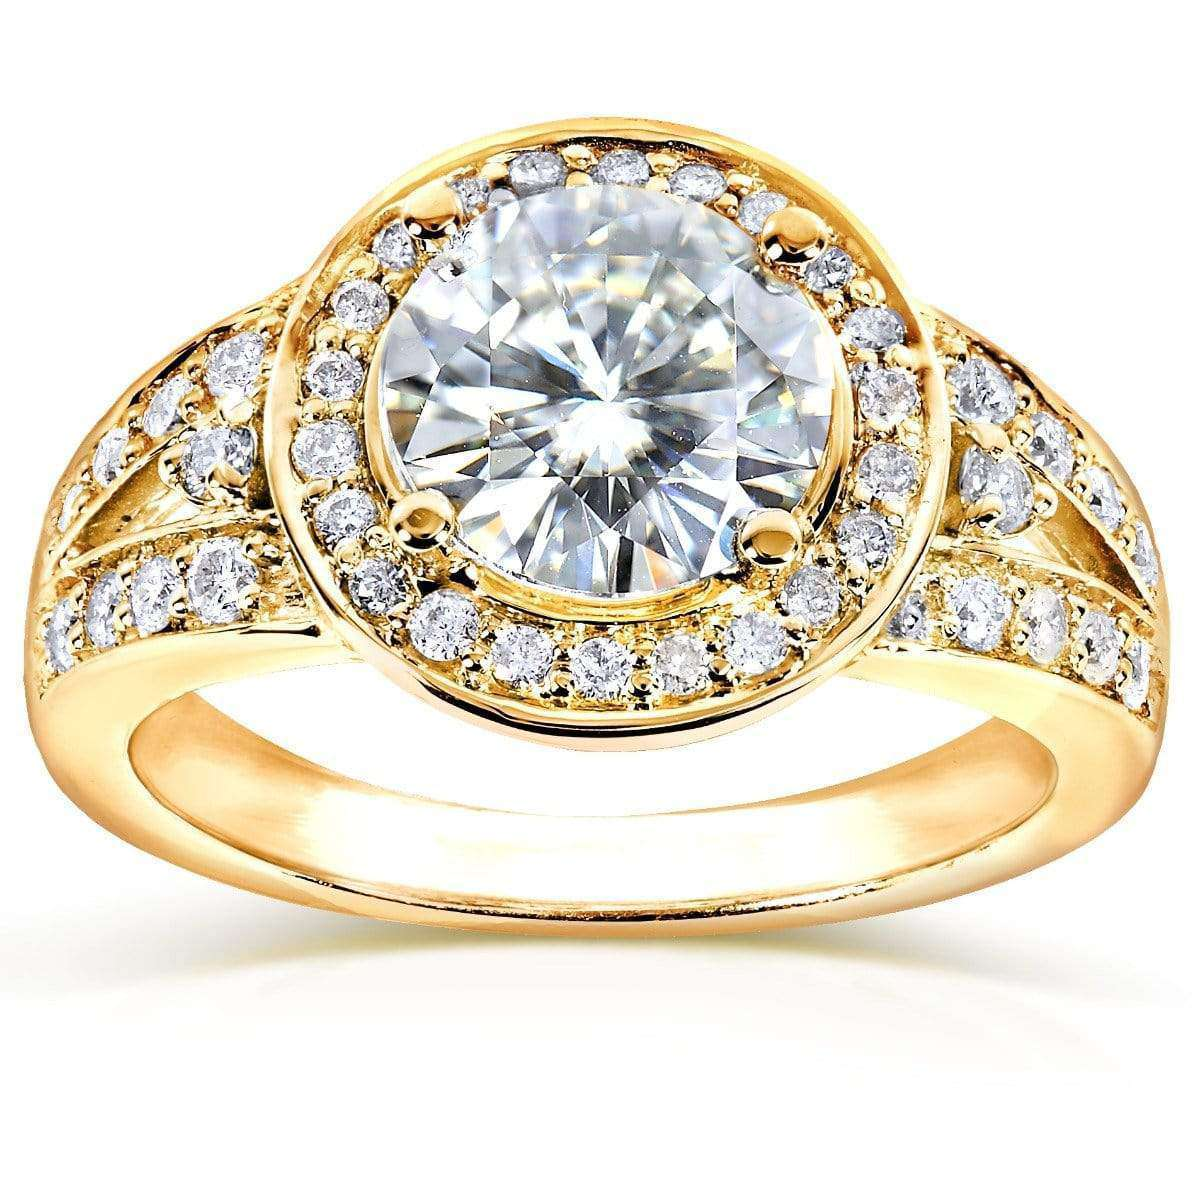 Discounts Round Moissanite Engagement Ring with Halo Diamond 1 7/8 CTW 14k Gold - yellow-gold 10.5